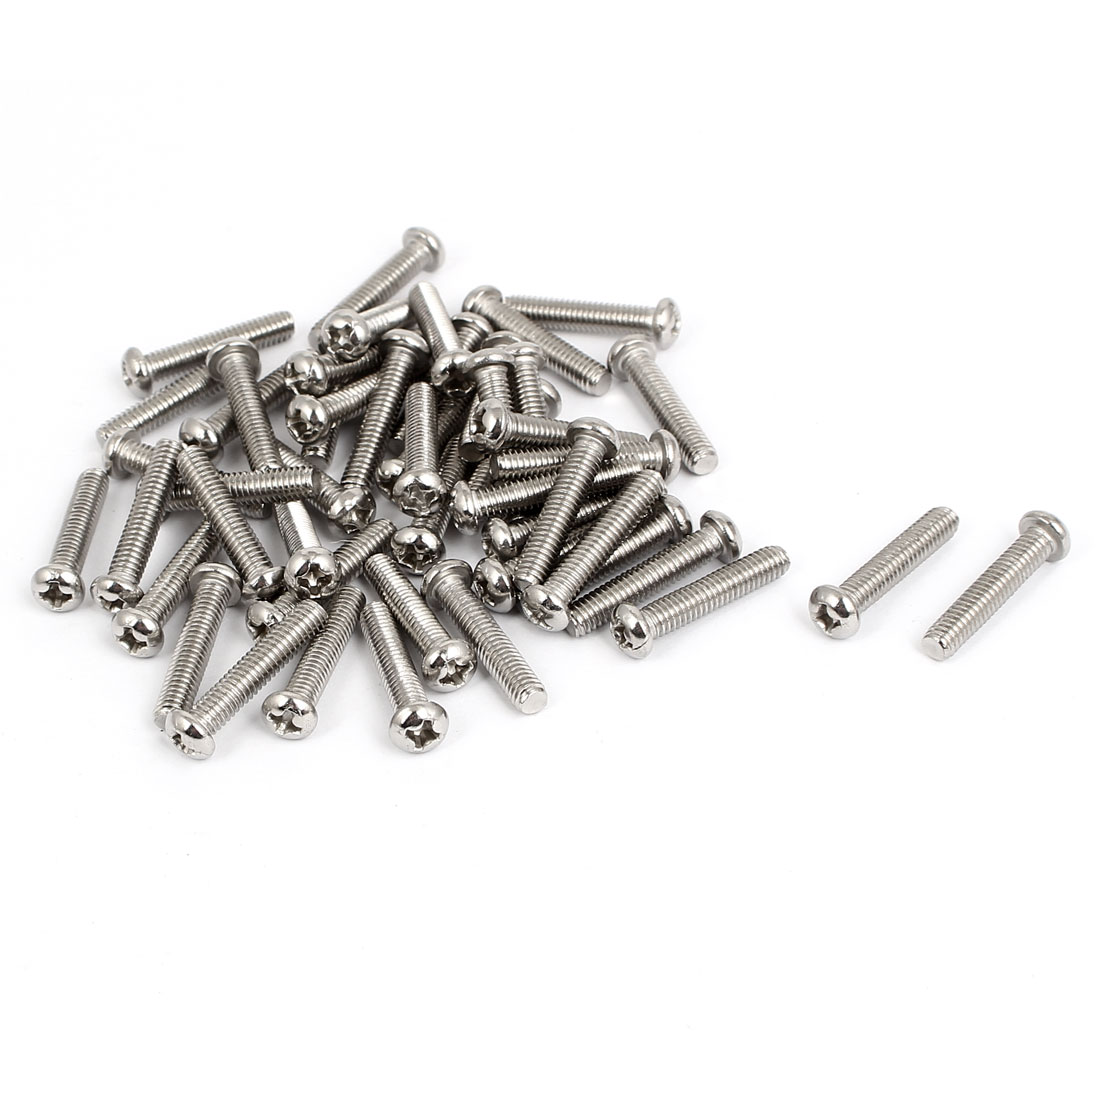 M4x20mm Stainless Steel Phillips Round Pan Head Machine Screws 50pcs